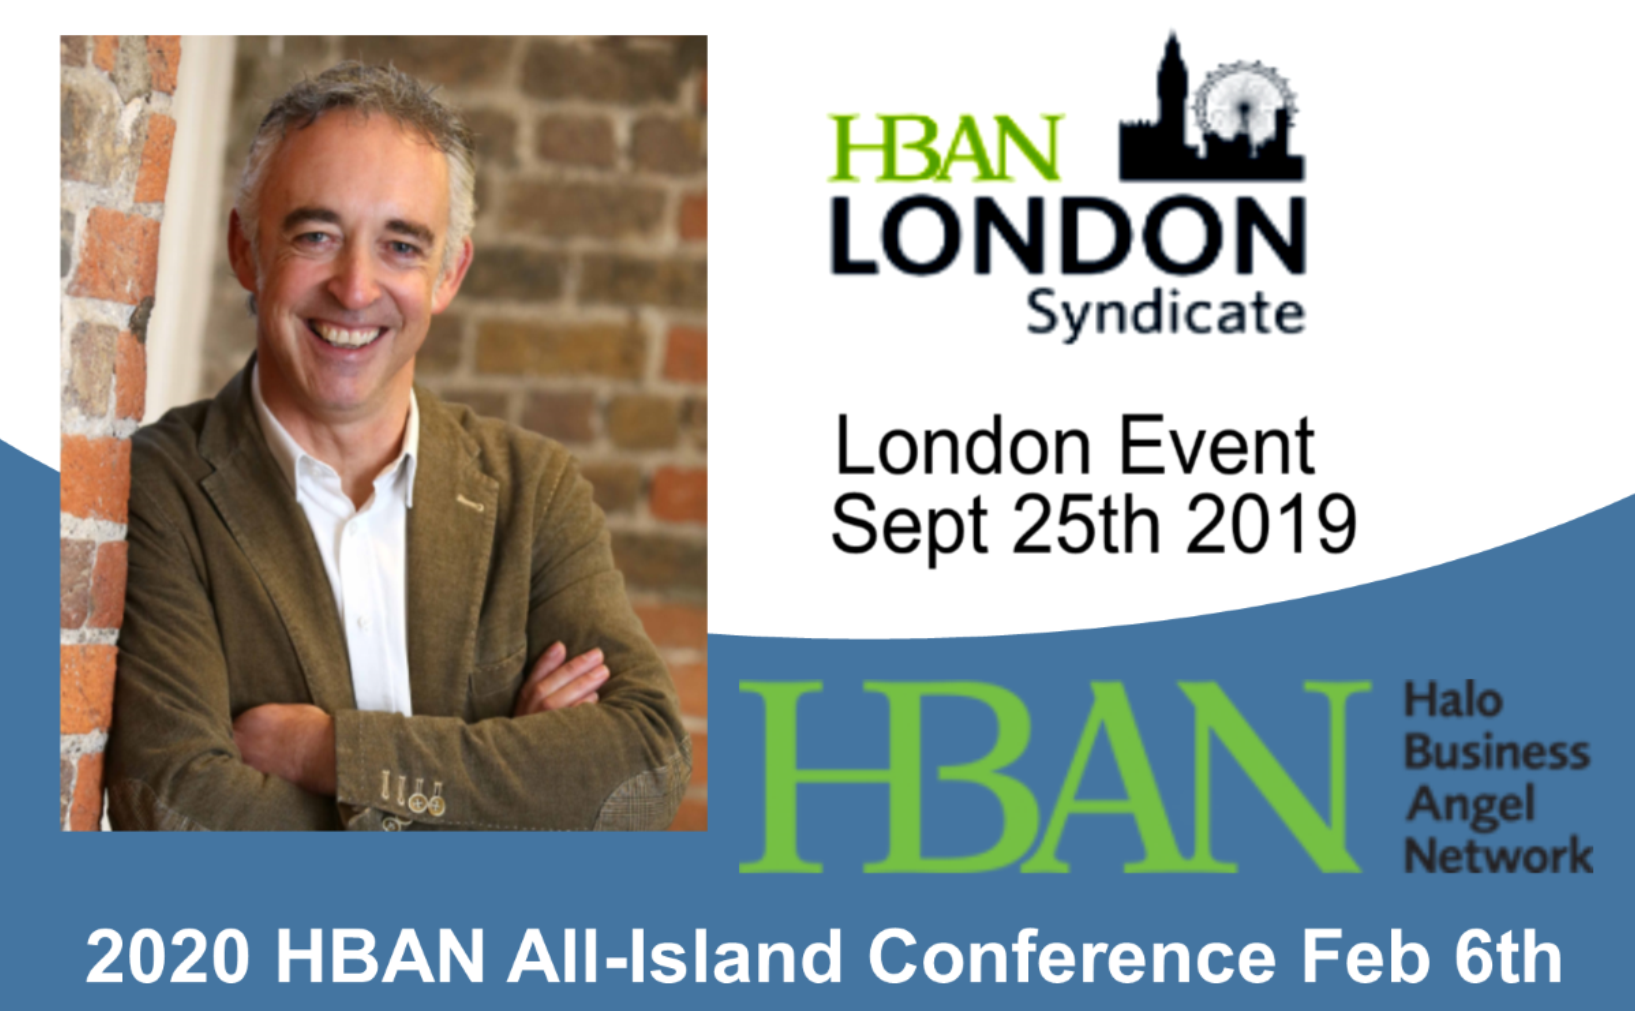 Angel Investing London Event & 2020 All-Island Conference With John Phelan, HBAN All-Island Director